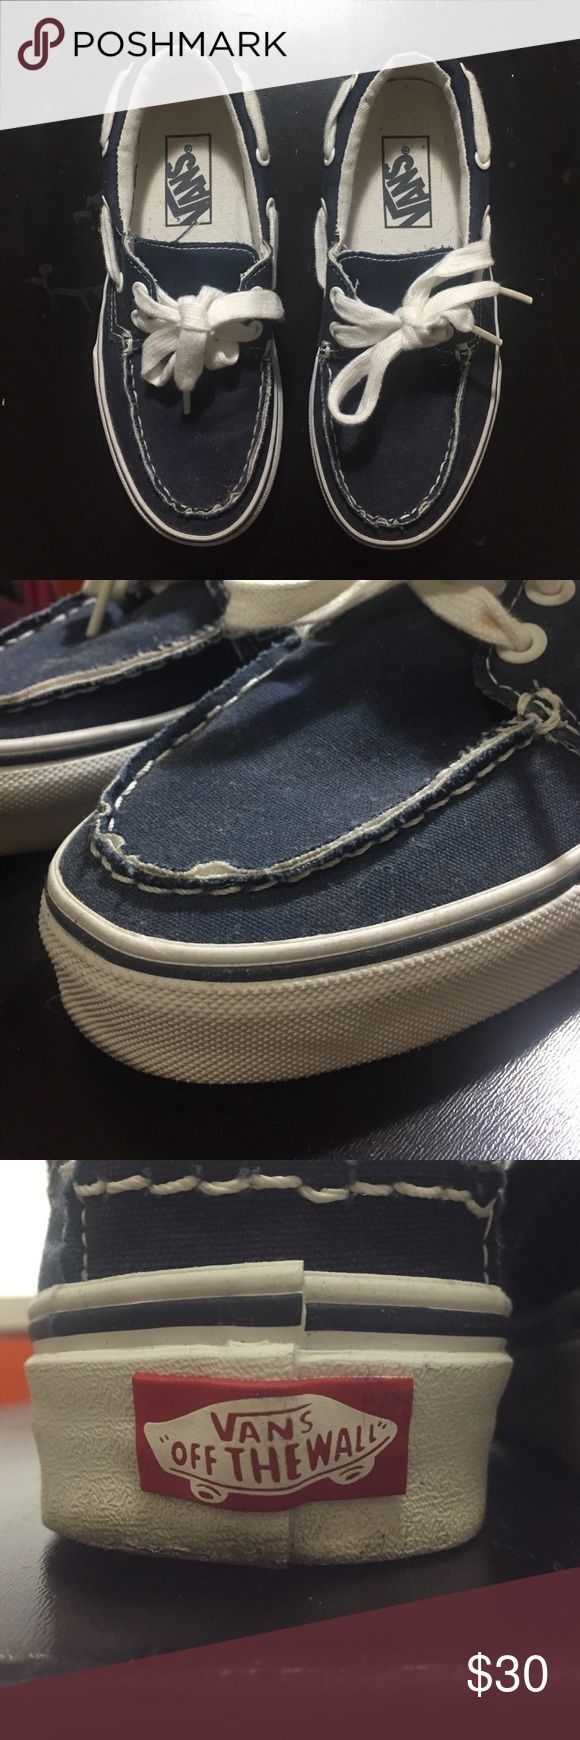 Navy Blue Vans Zapato Del Barco Worn once! 9.5/10 condition. Size 3.5 in men. Size 5 in women.    💟 VERY OPEN TO OFFERS 💟 BUT PLEASE NO LOWBALLING 💟 NOT OPEN TO TRADES Vans Shoes Sneakers